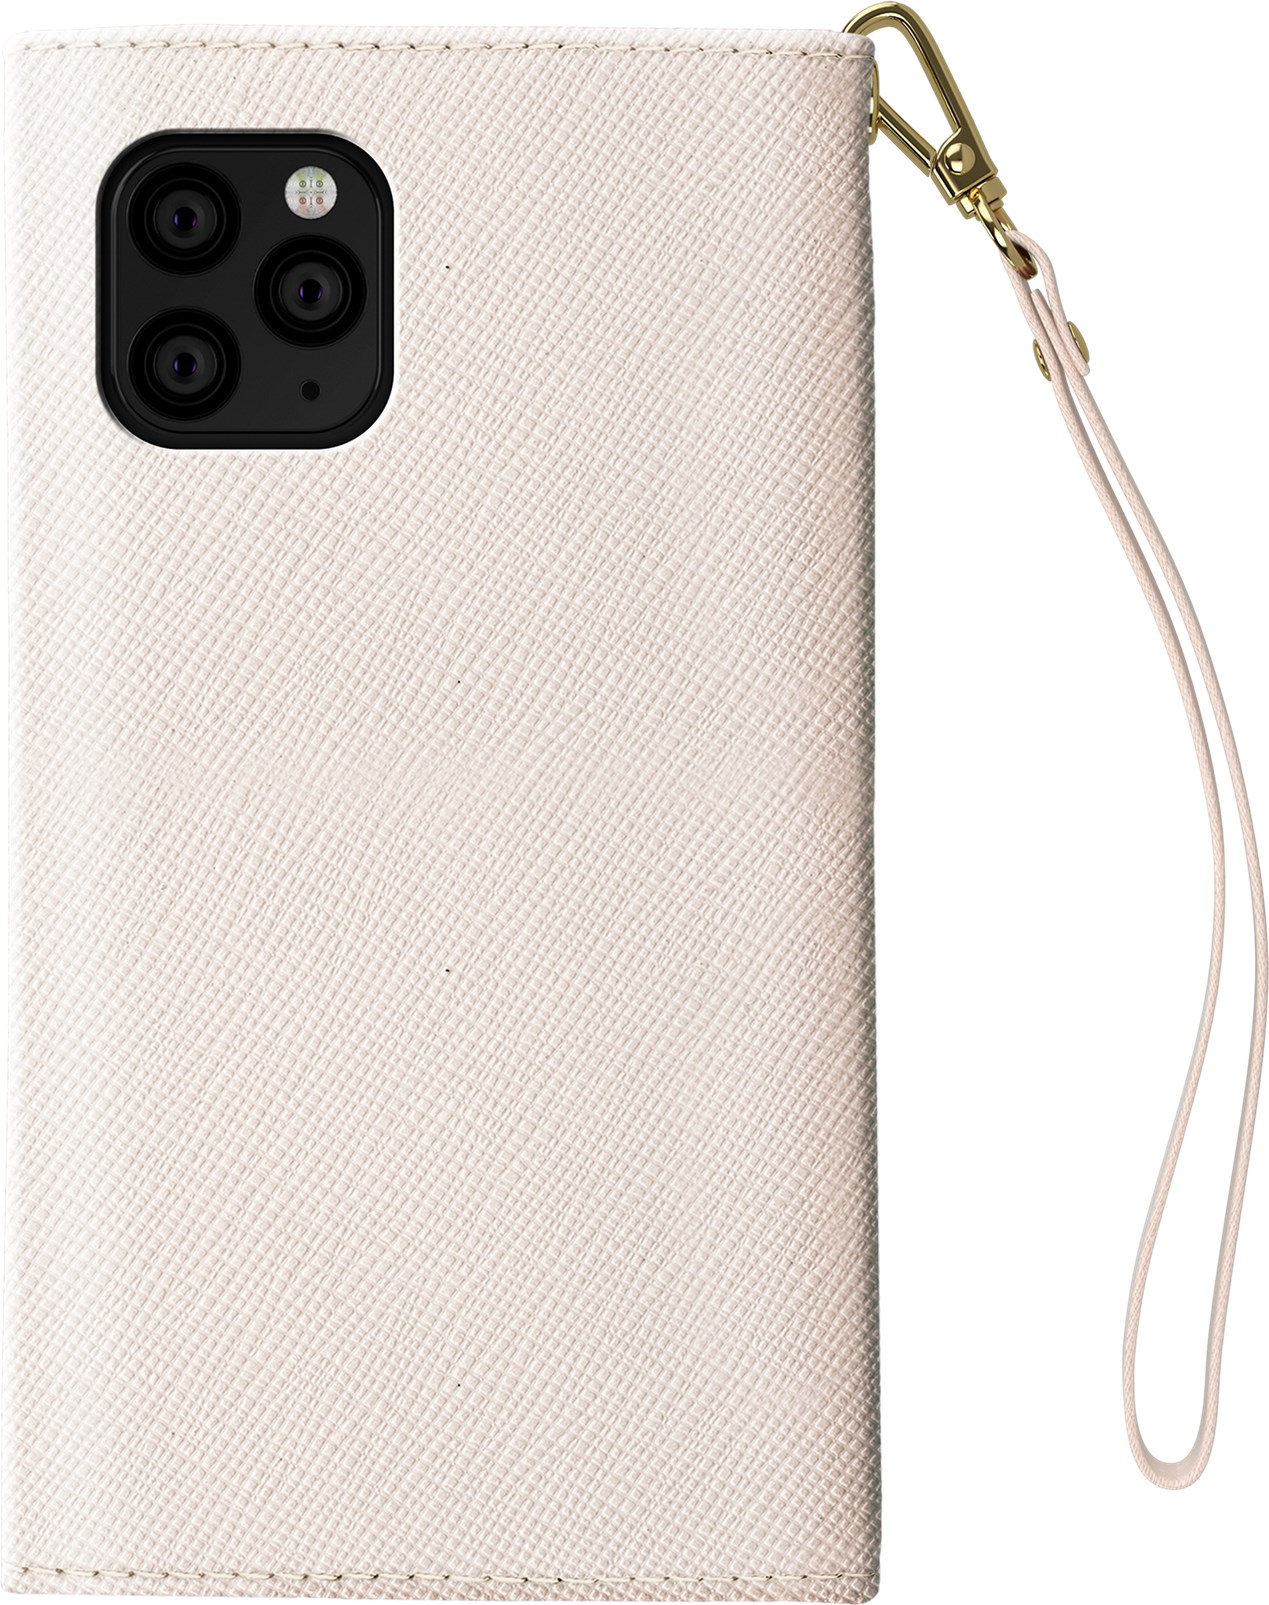 iDeal of Sweden Ideal Mayfair Clutch Iphone 11 Pro Beige